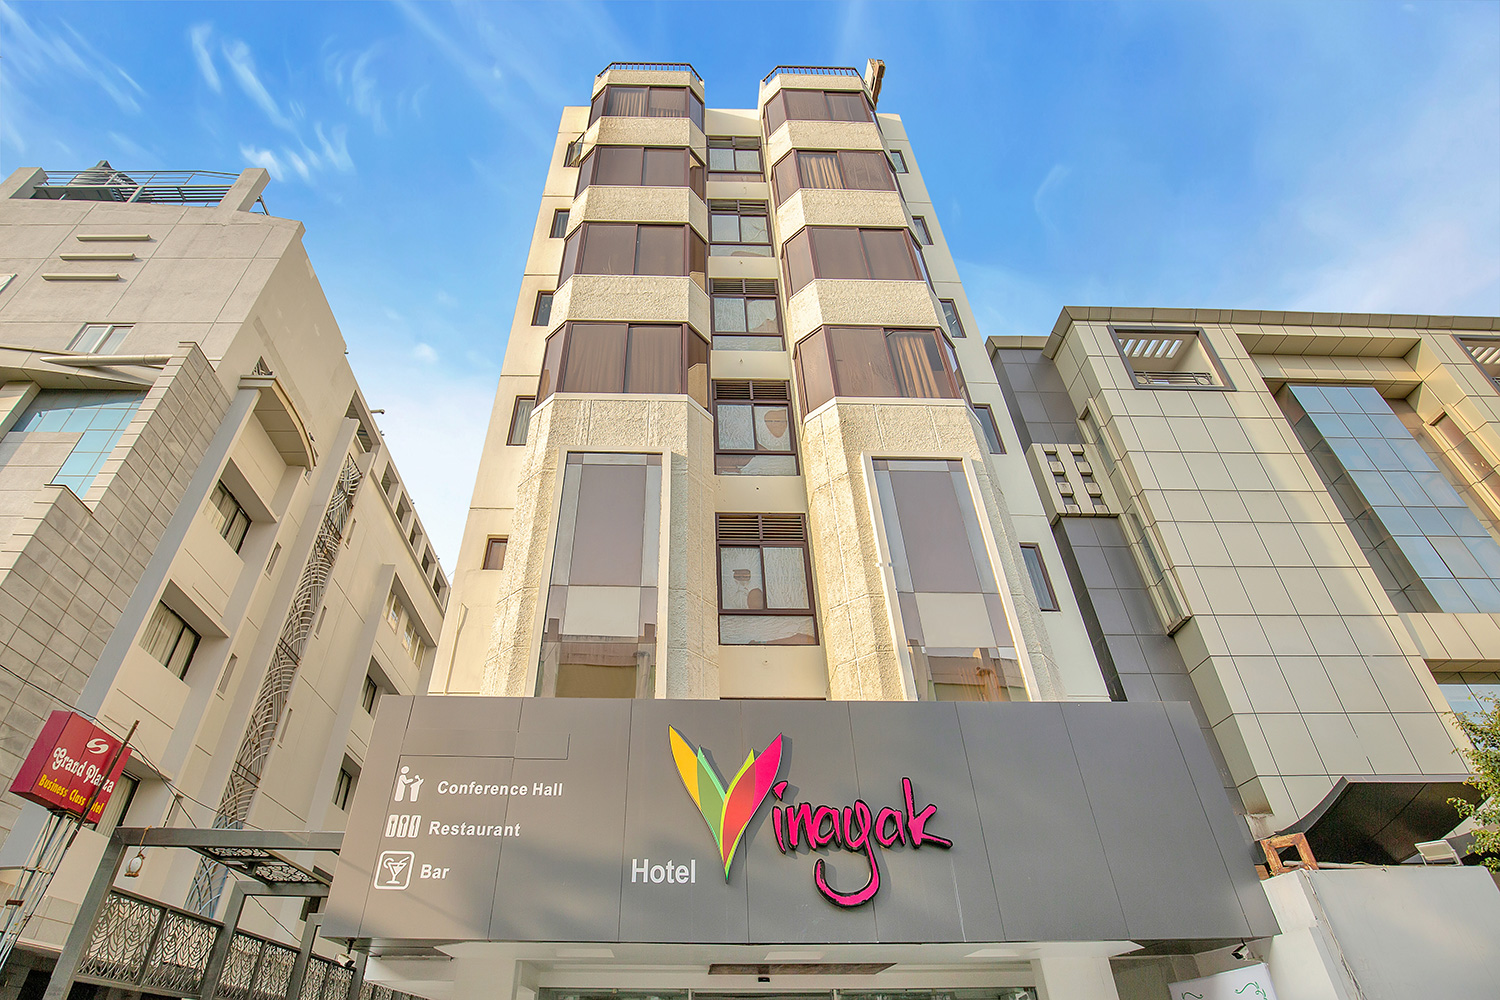 Best hotels in coimbatore near railway station|Vinayak IN"|1500|1000|?|c34e3416f7d0252baa83060e50a185fc|False|UNLIKELY|0.32039883732795715